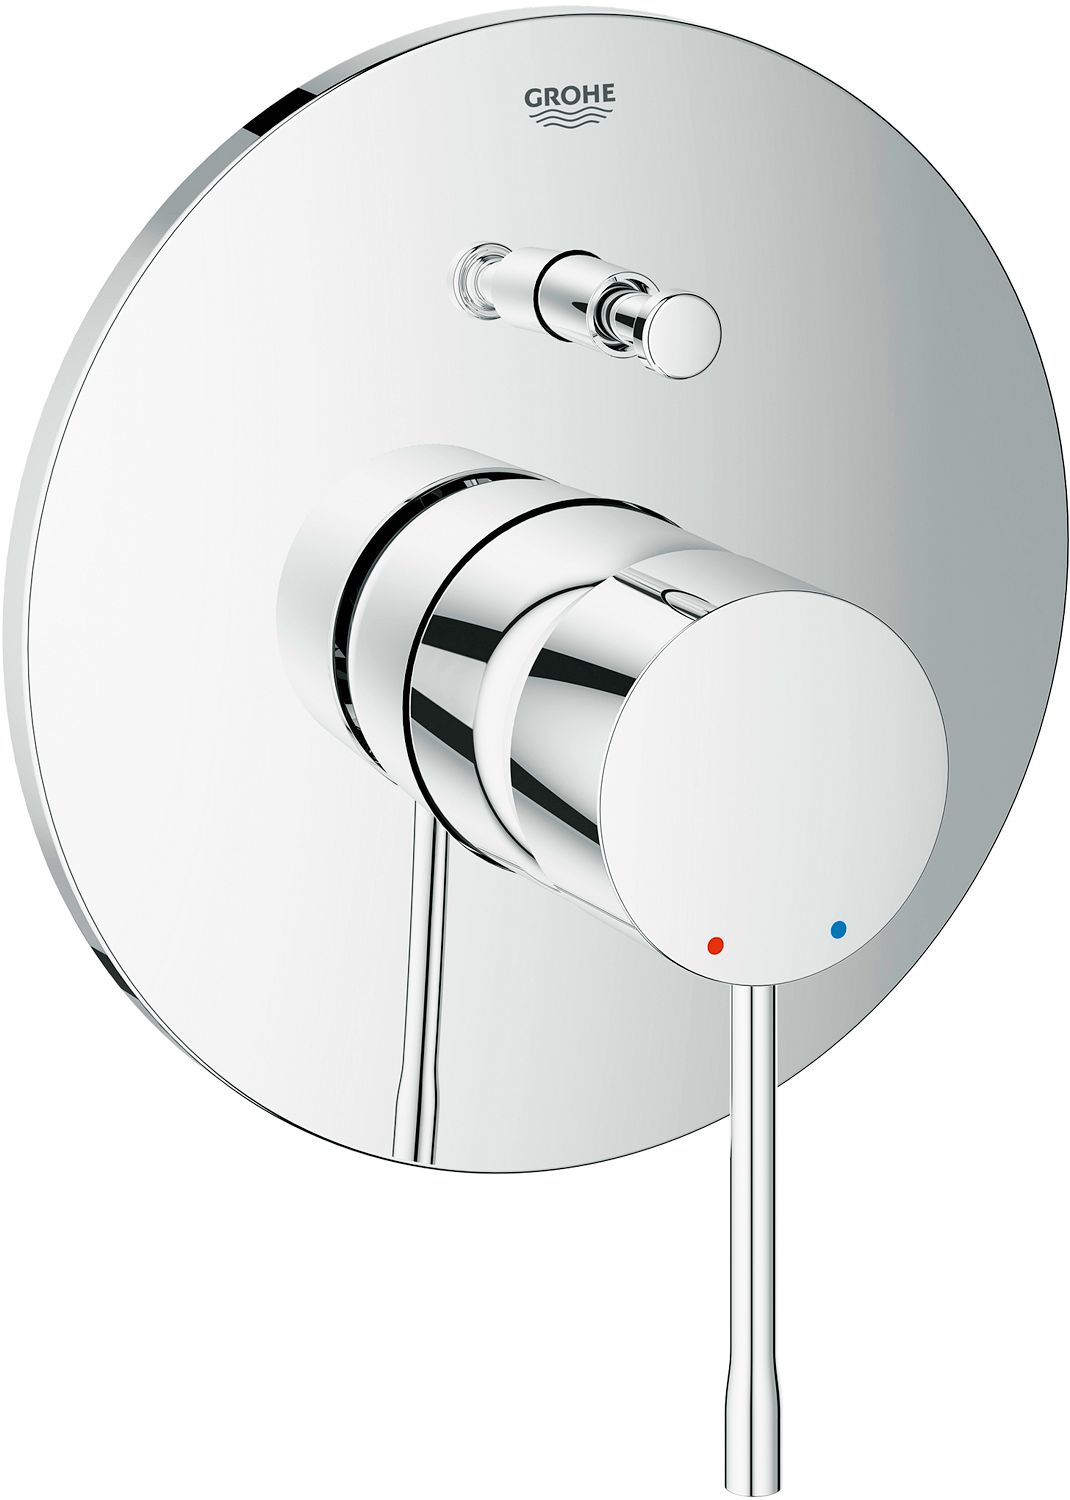 KLEURSET BAD ESSENCE NEW GROHE CHROOM